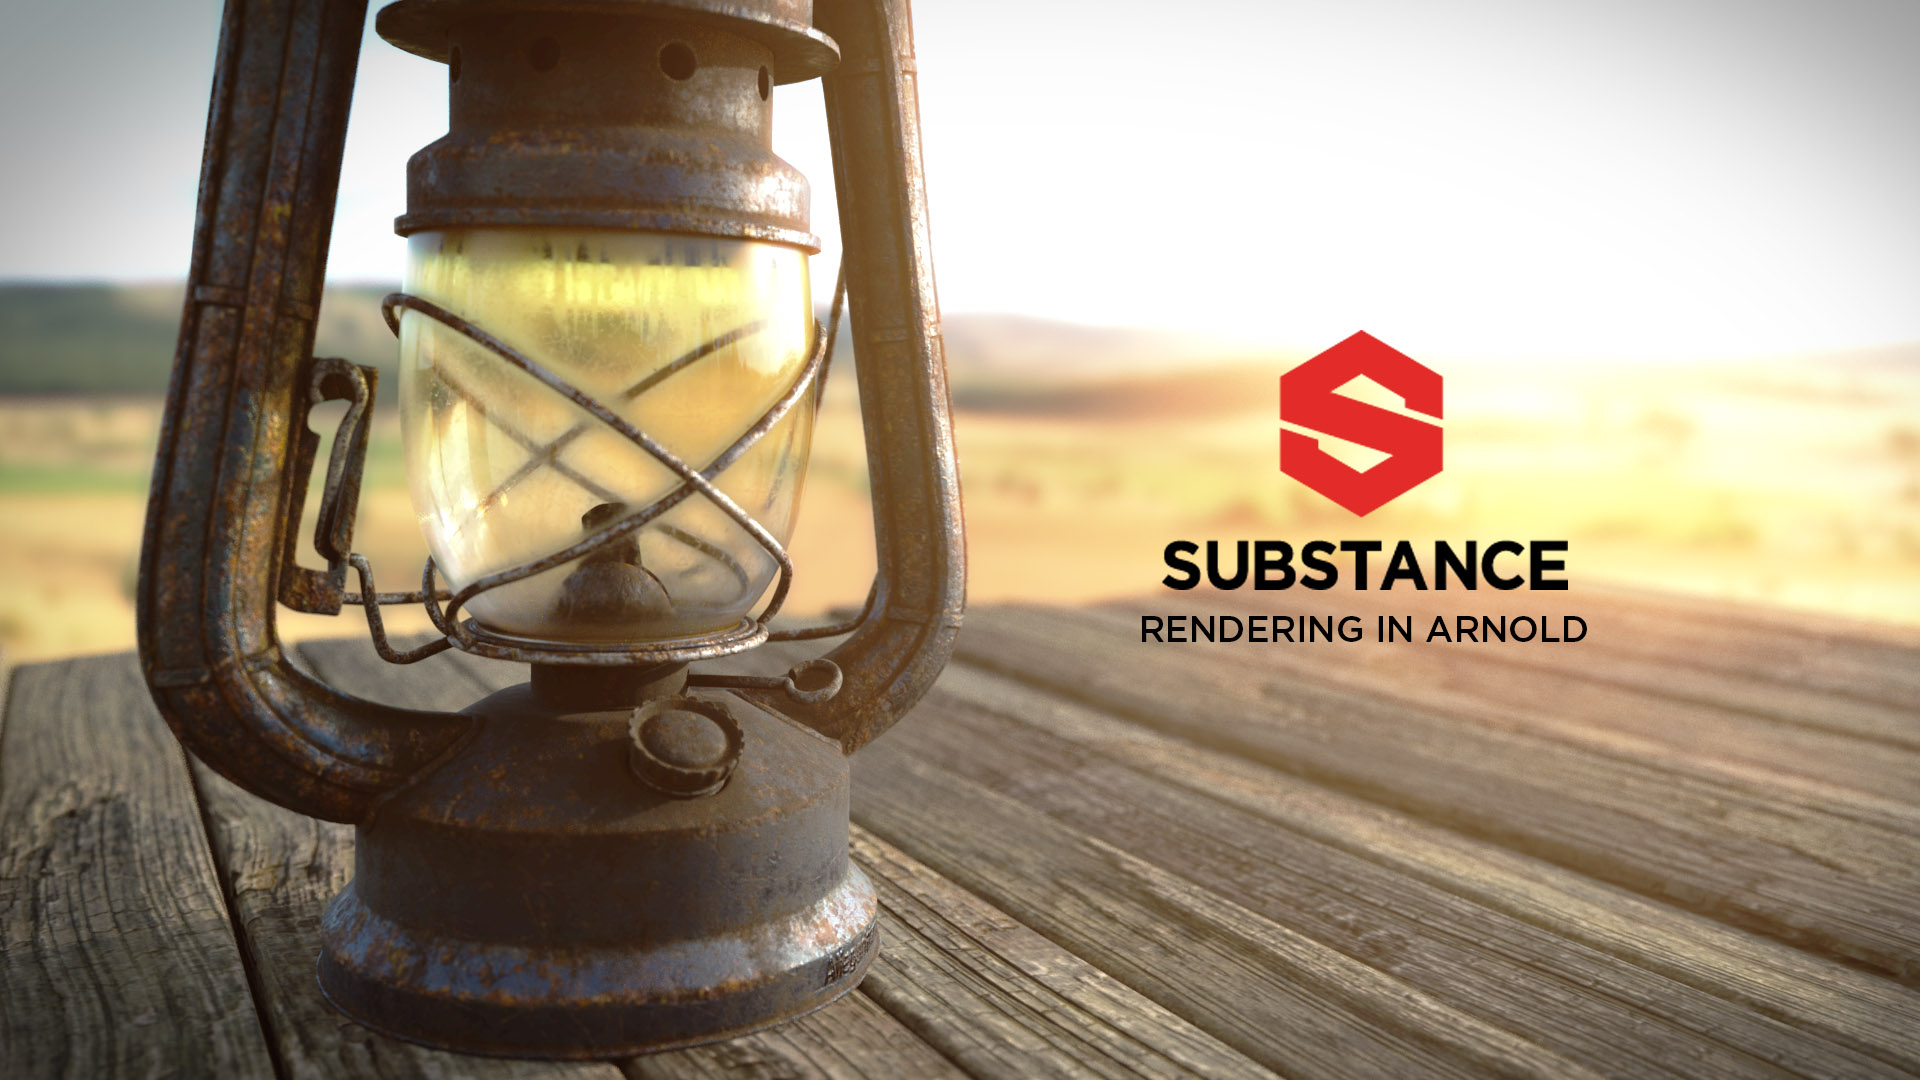 Substance guide to Rendering in Arnold for Maya on Substance Academy